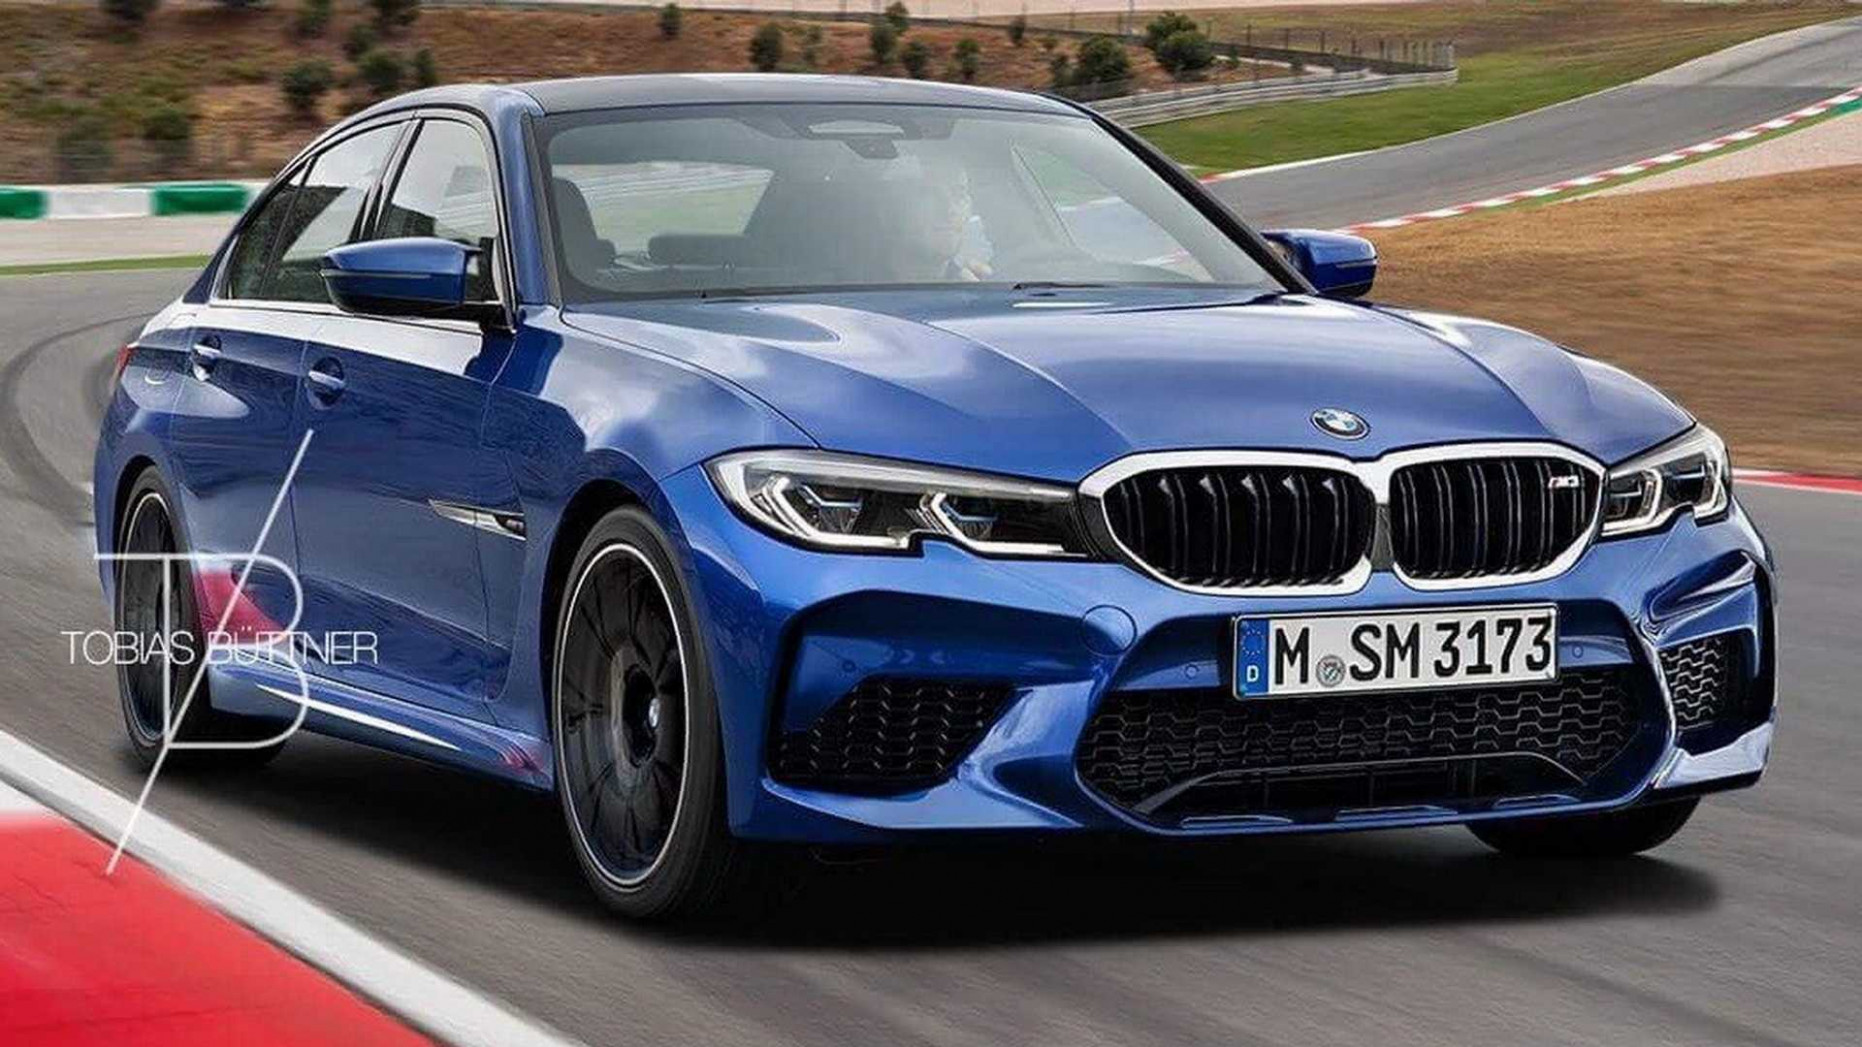 8 BMW M8 Pure Allegedly Planned With RWD, 8-Speed Manual